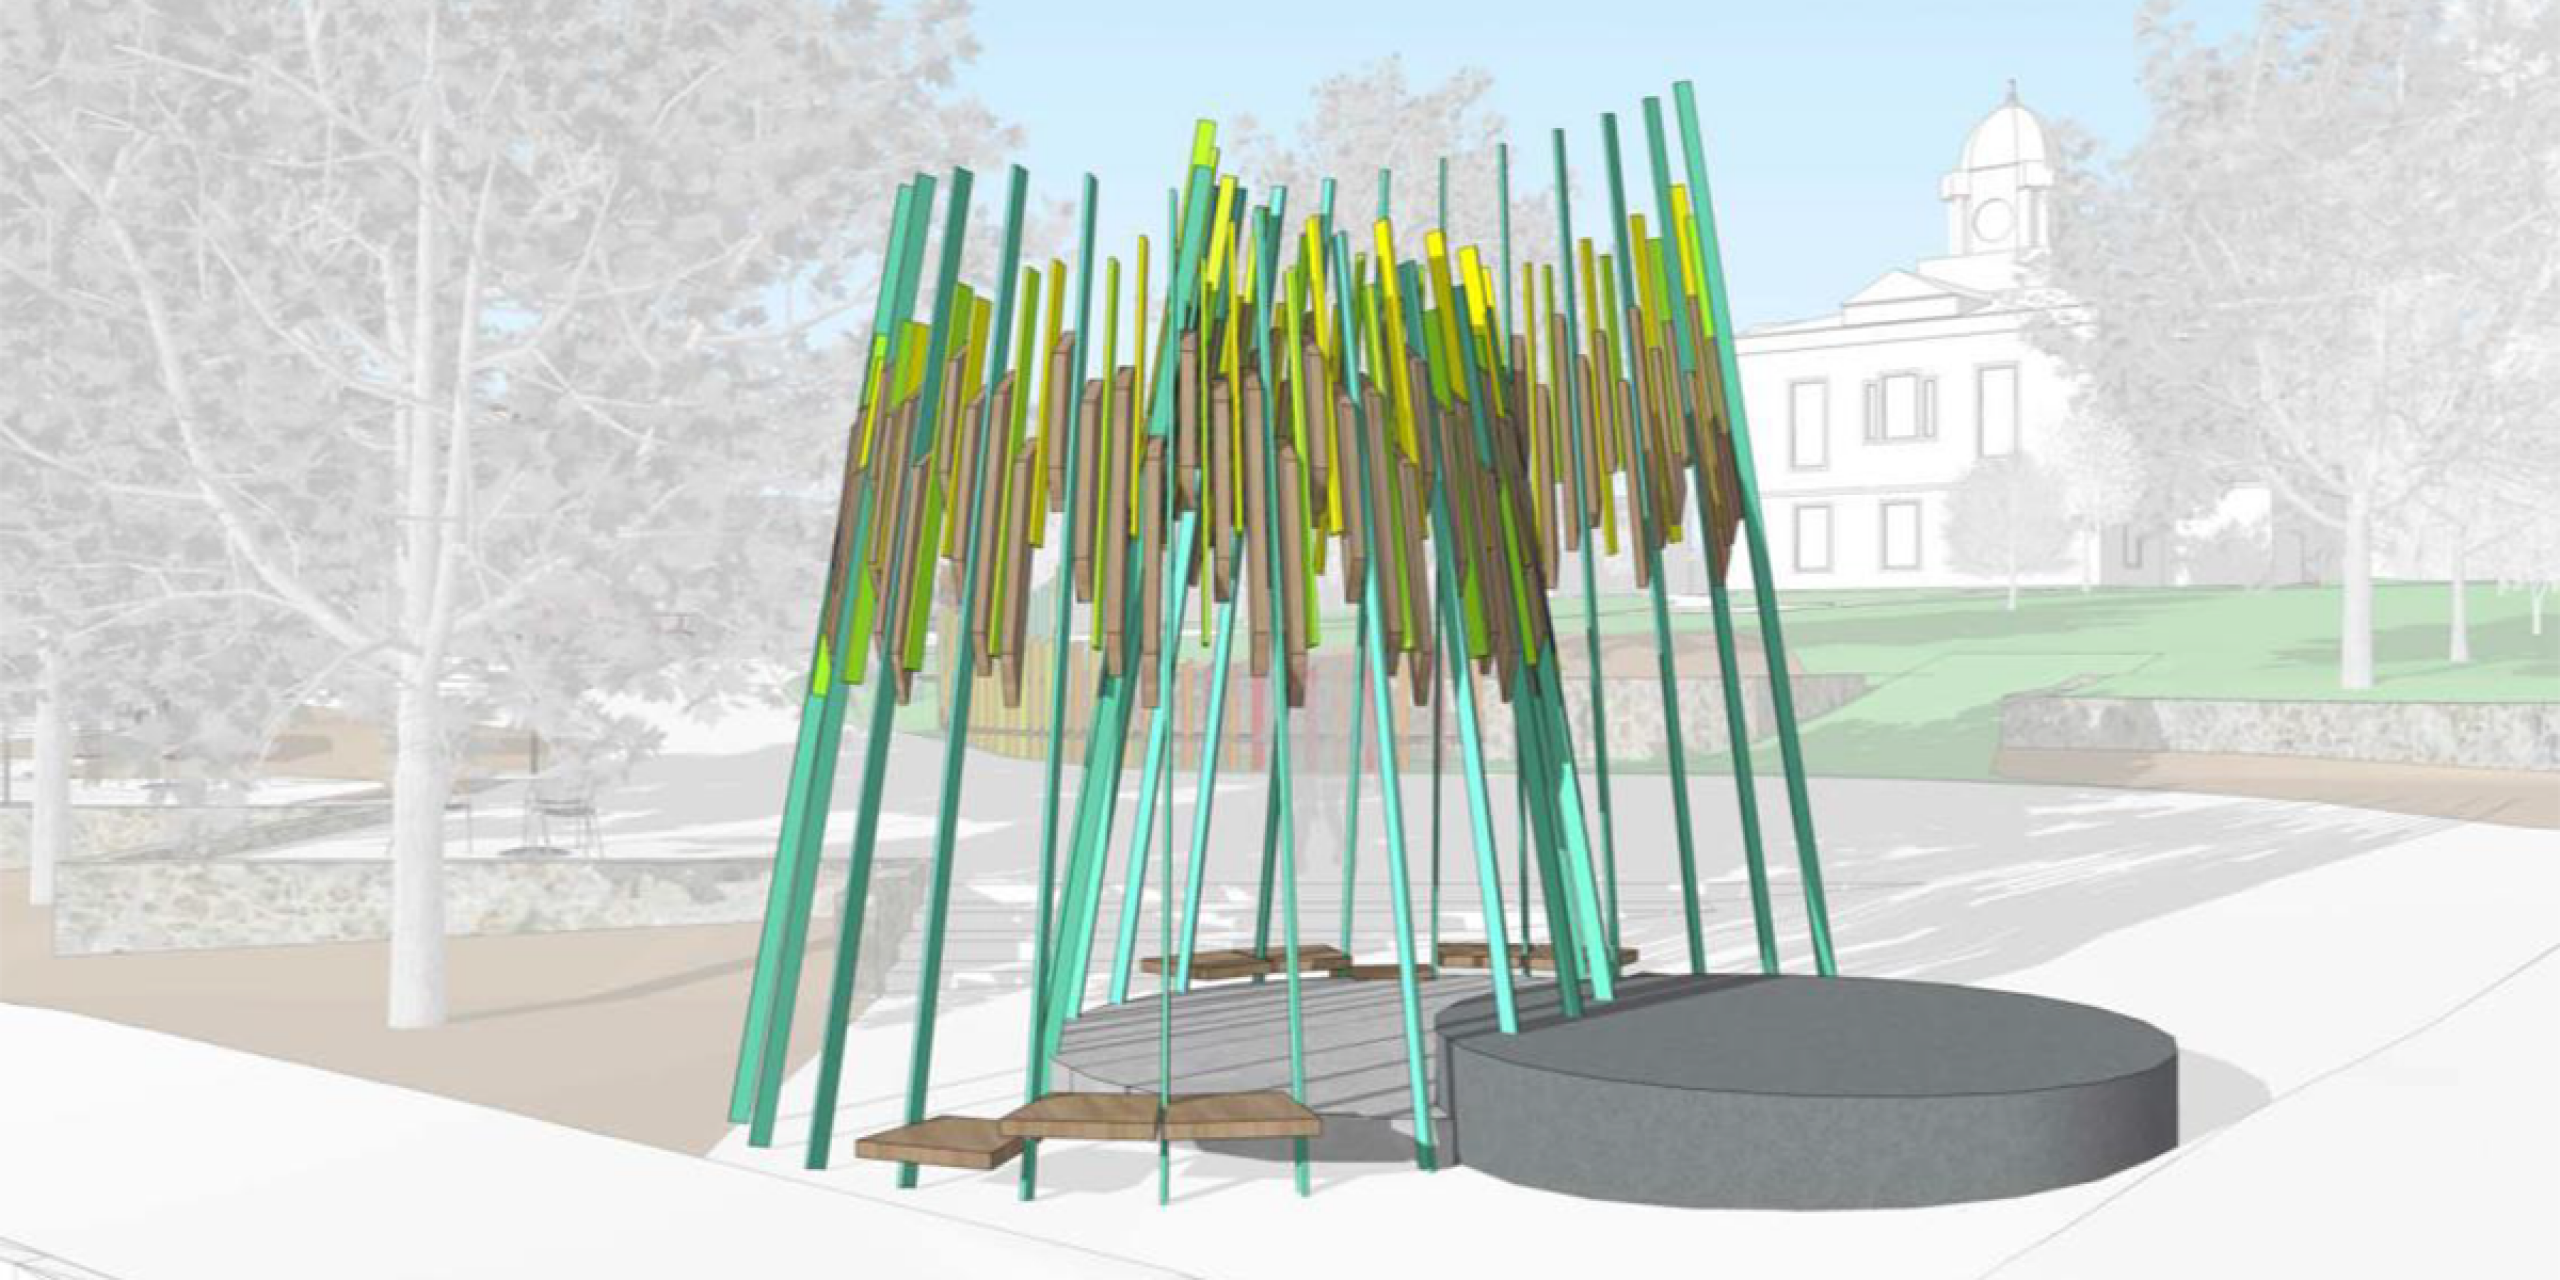 Rendering for Morganton Courthouse Square project by artist Miki Iwasaki